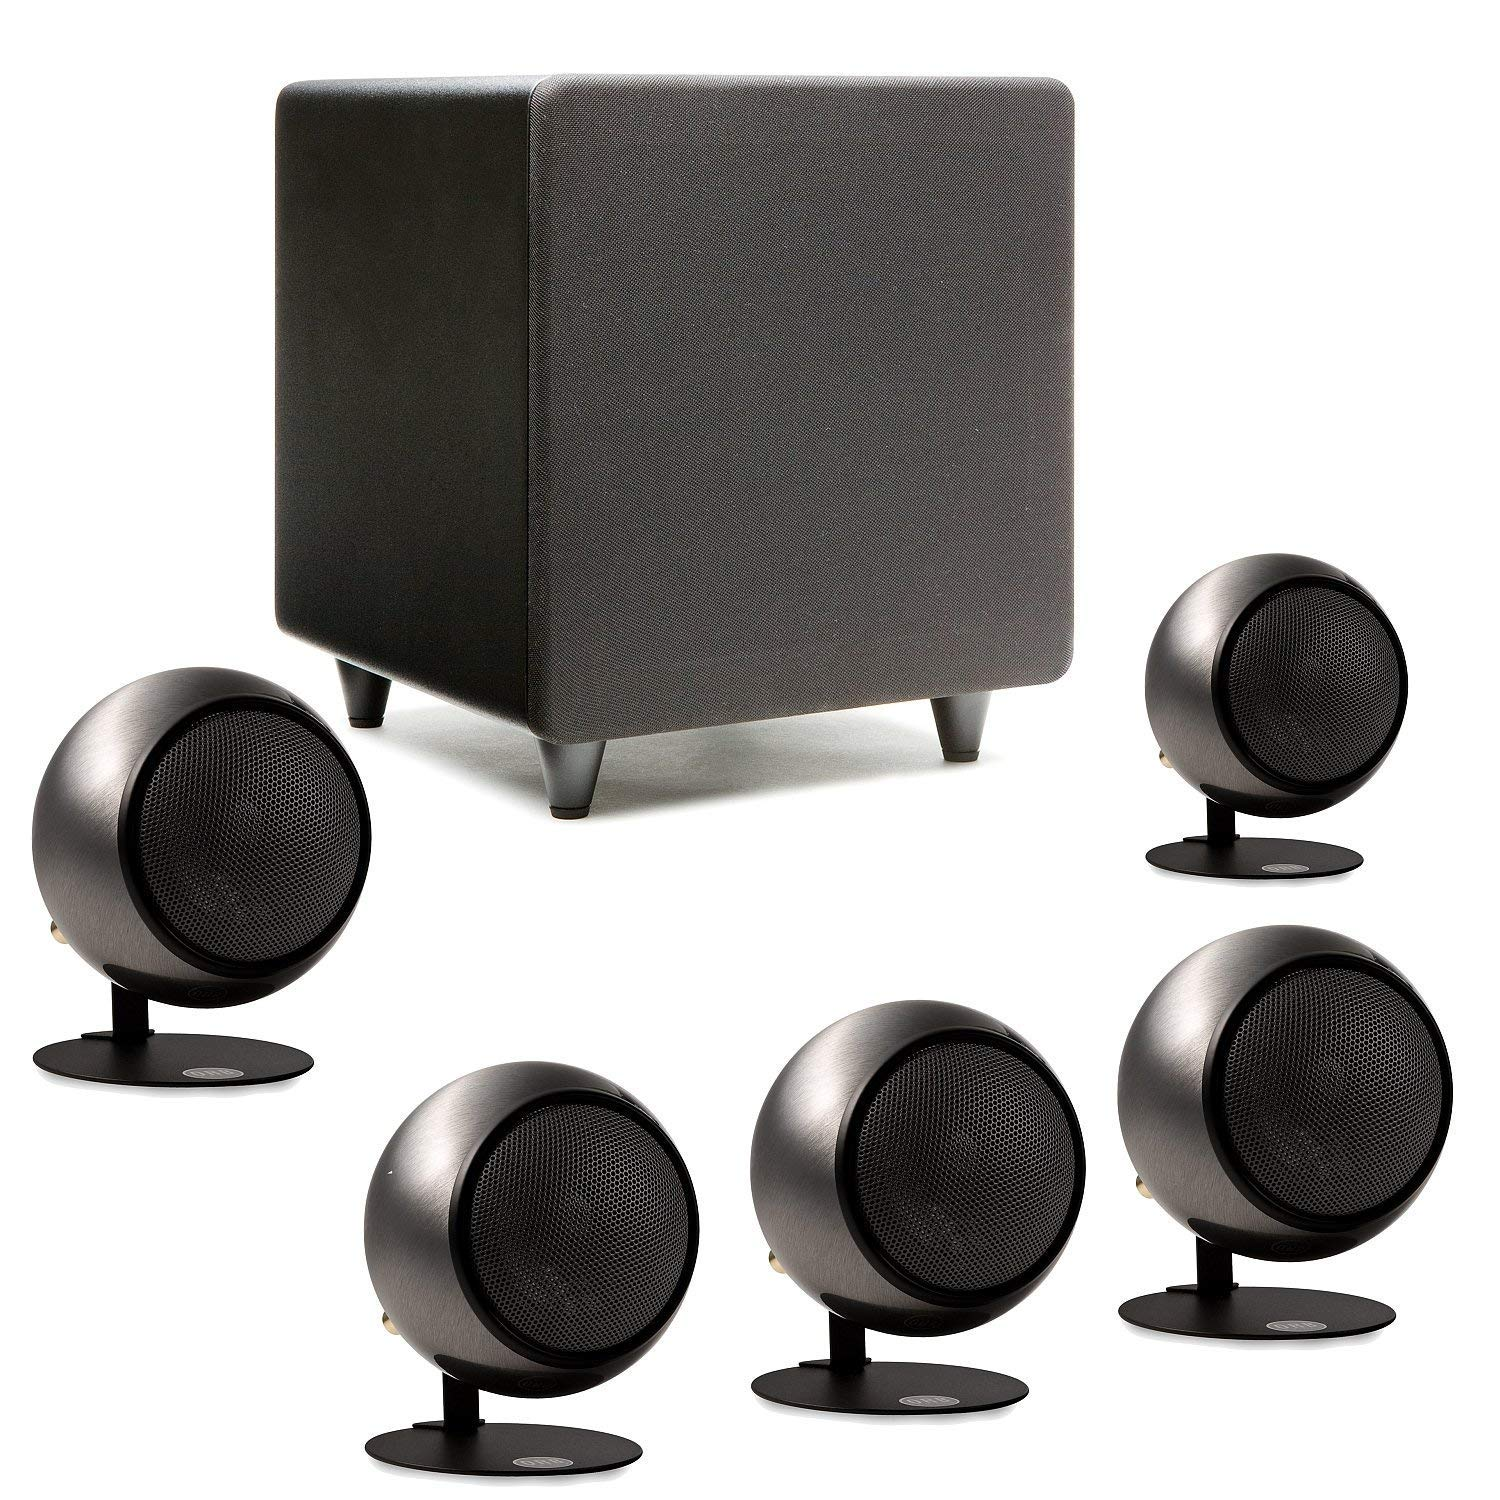 Orb Audio Mini 5.1 Home Theater Speaker System (Polished Steel)